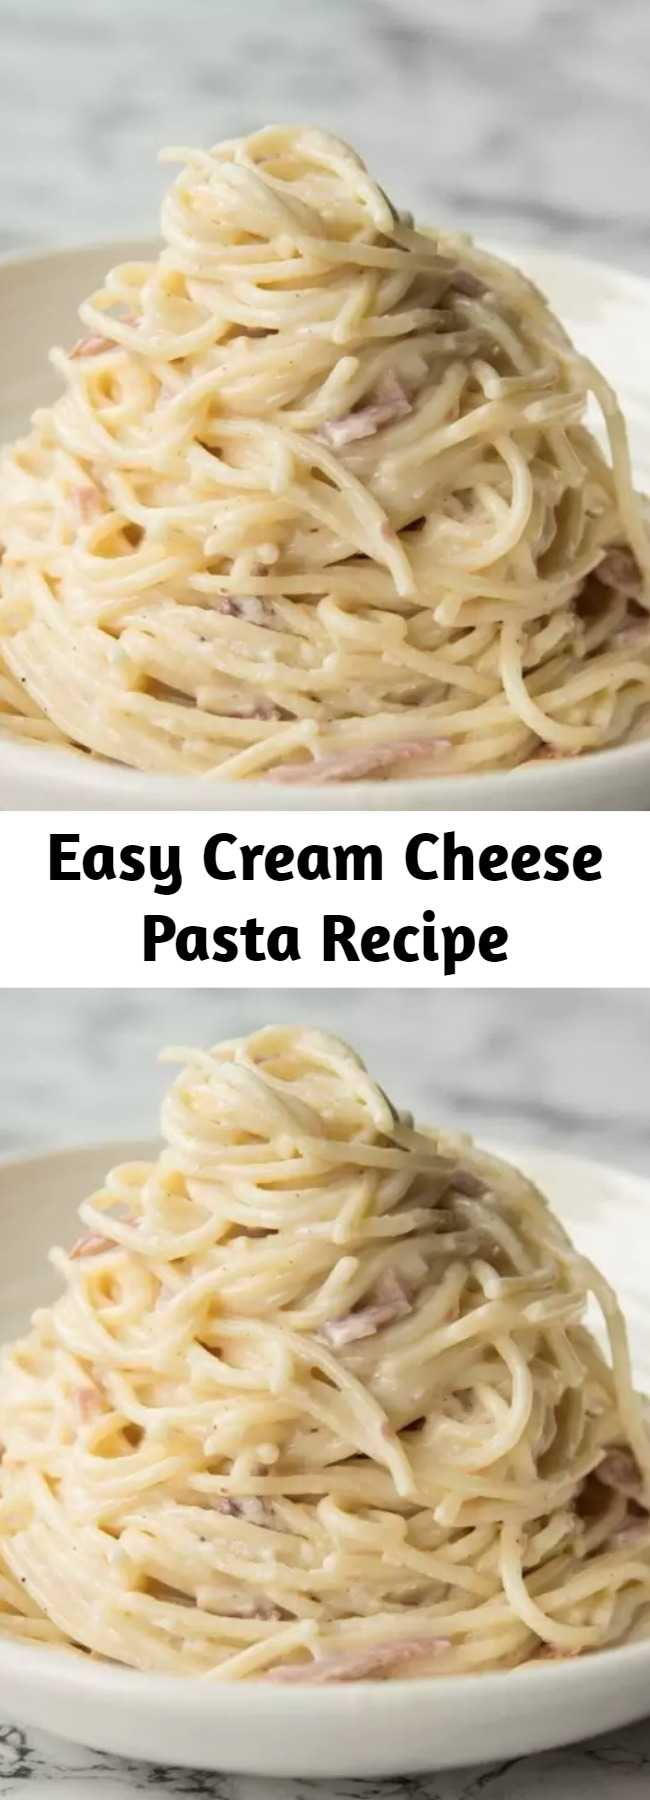 Easy Cream Cheese Pasta Recipe - Here I'll show you a secret tip to getting truly creamy Cream Cheese Pasta without the sauce drying up. With just 5 ingredients, this easy pasta dish is a total winner! #cream #cheese #creamcheese ##creamcheesepasta #pasta